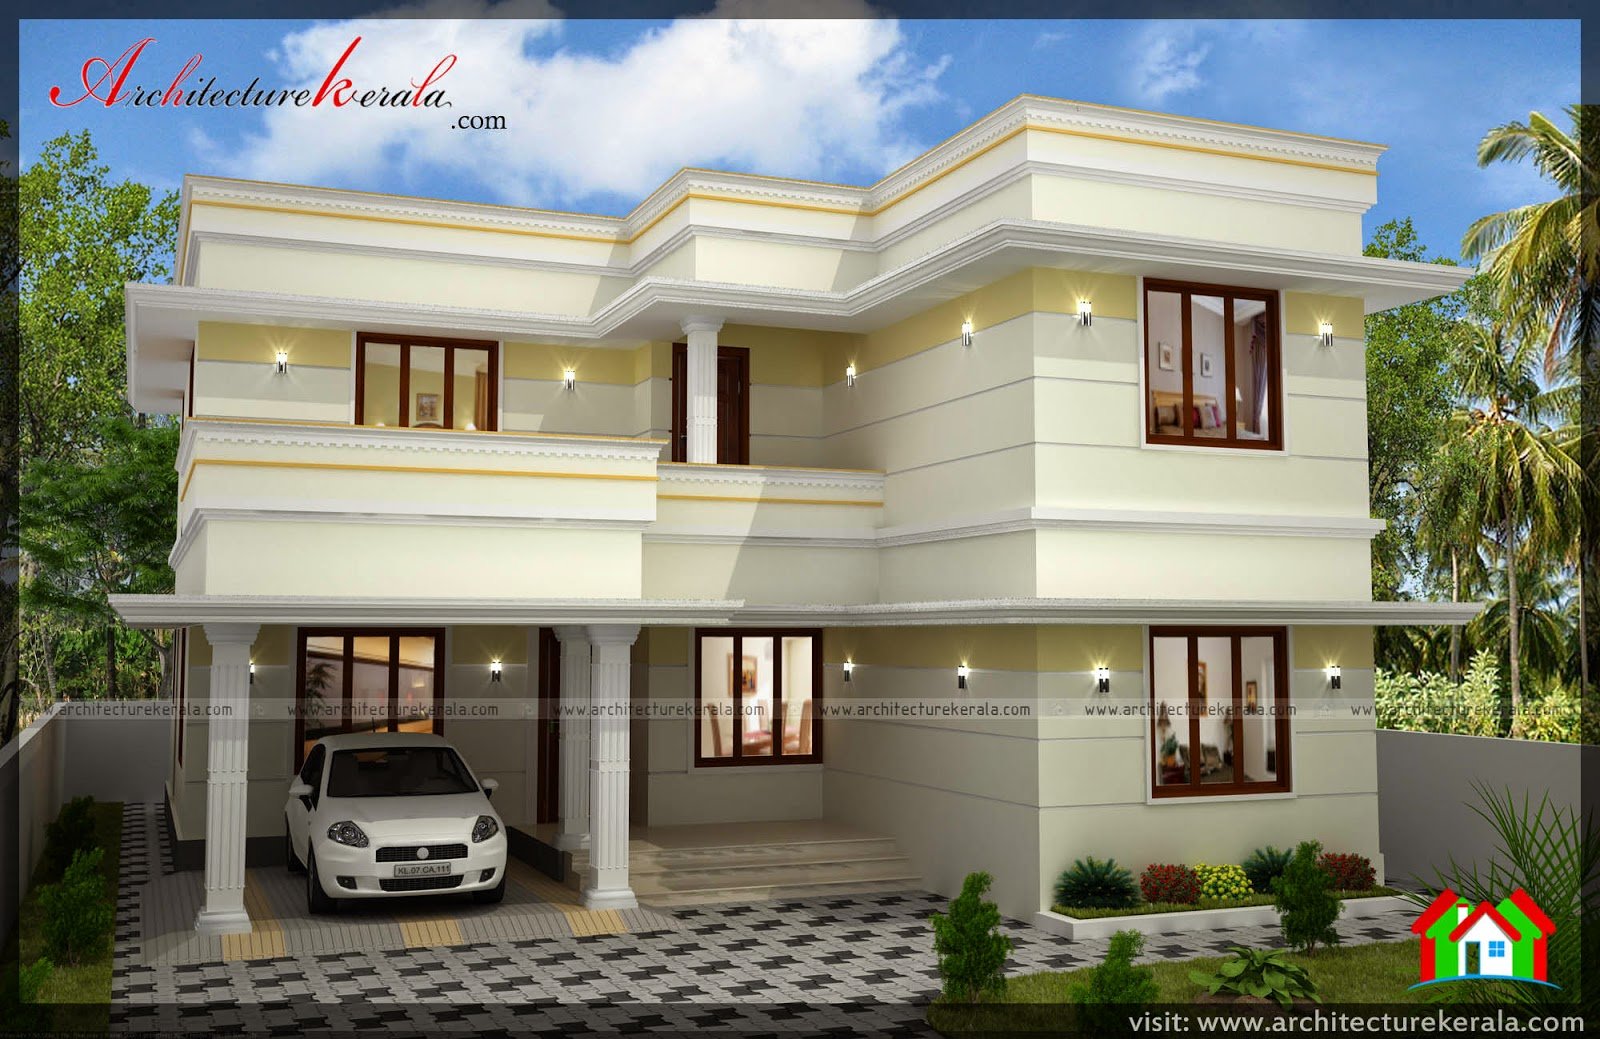 Double Story Building Elevation : Three bedroom two storey house plan architecture kerala